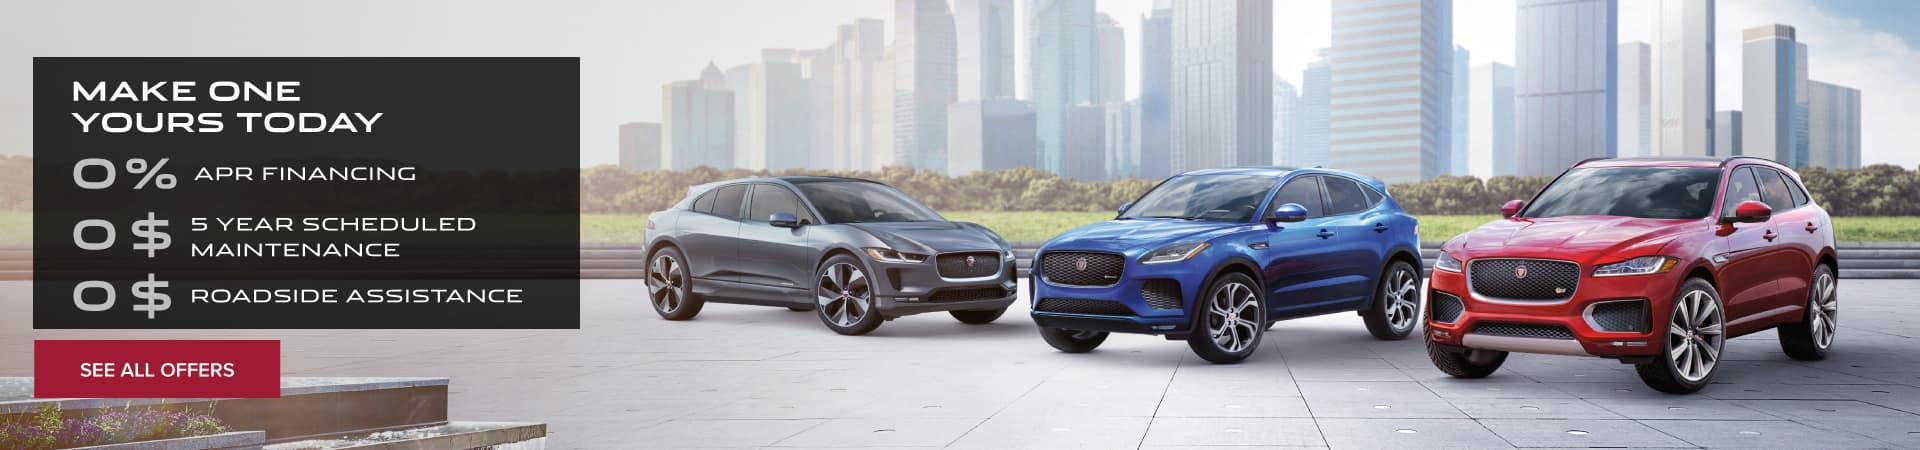 Autobahn Jaguar Fort Worth | Make One Yours Today - Sales Event